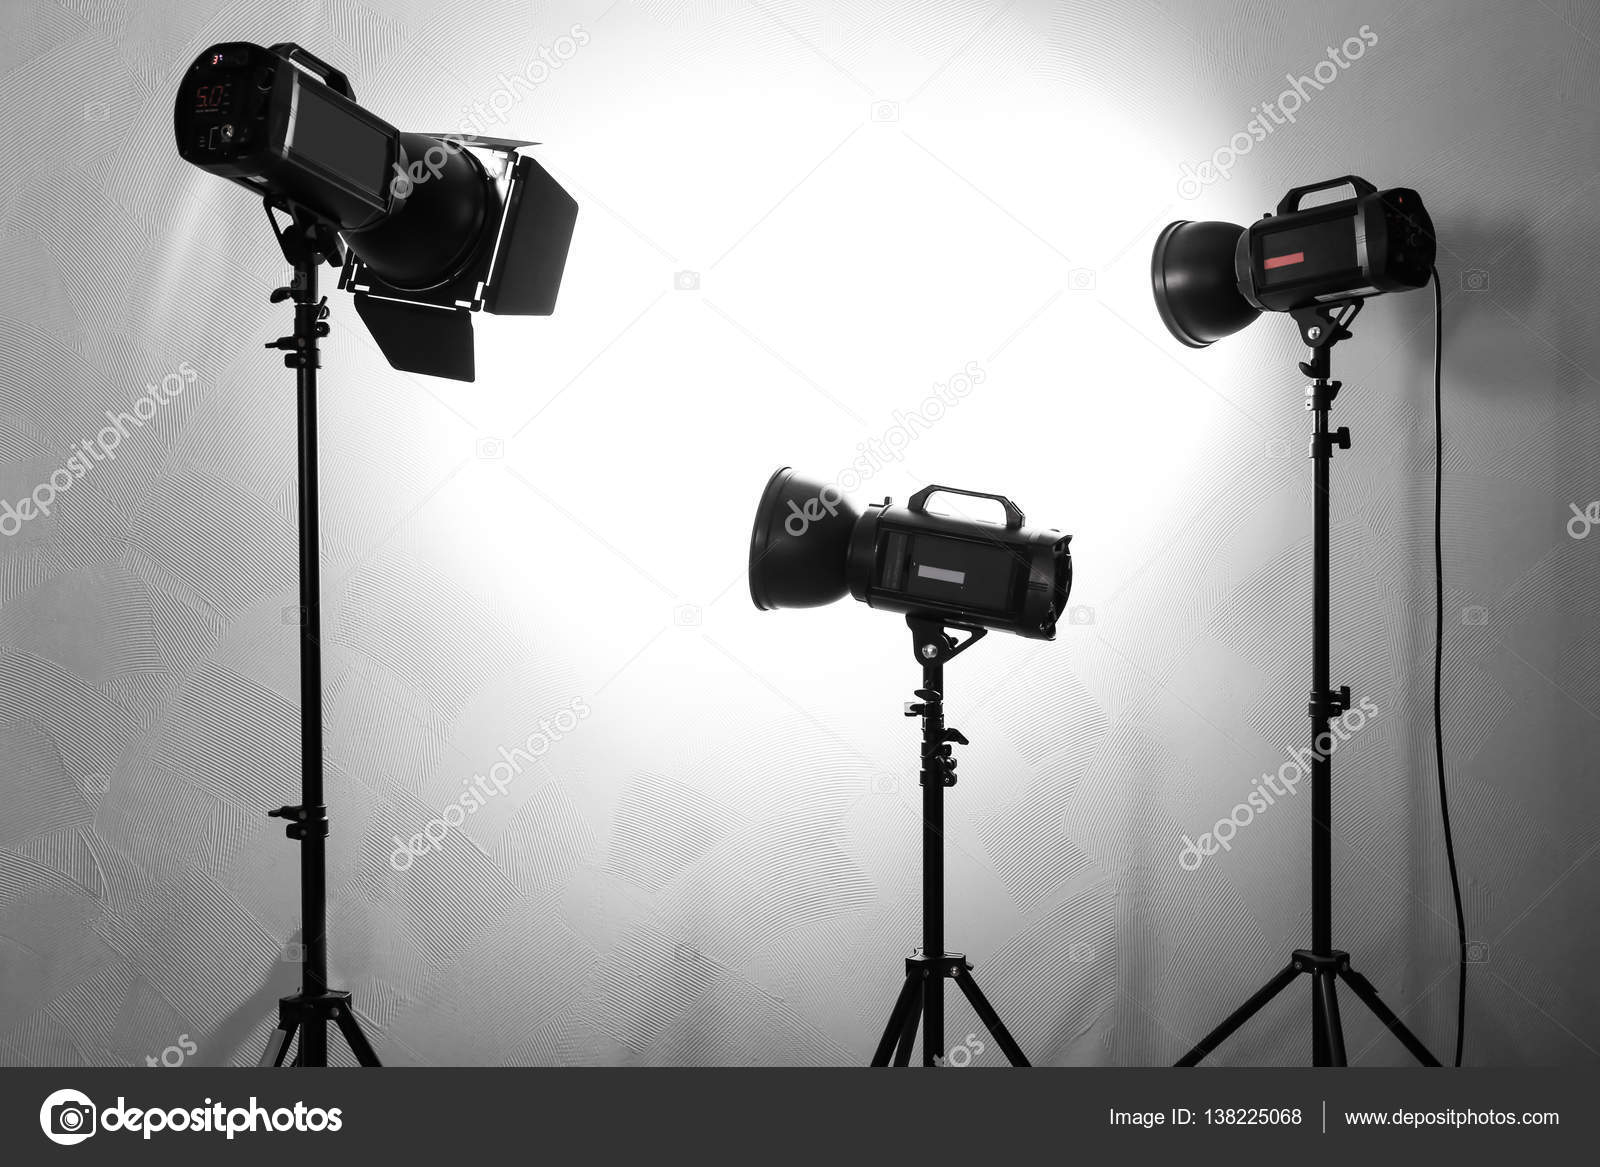 image download now empty stock equipment with lighting photo studio photography